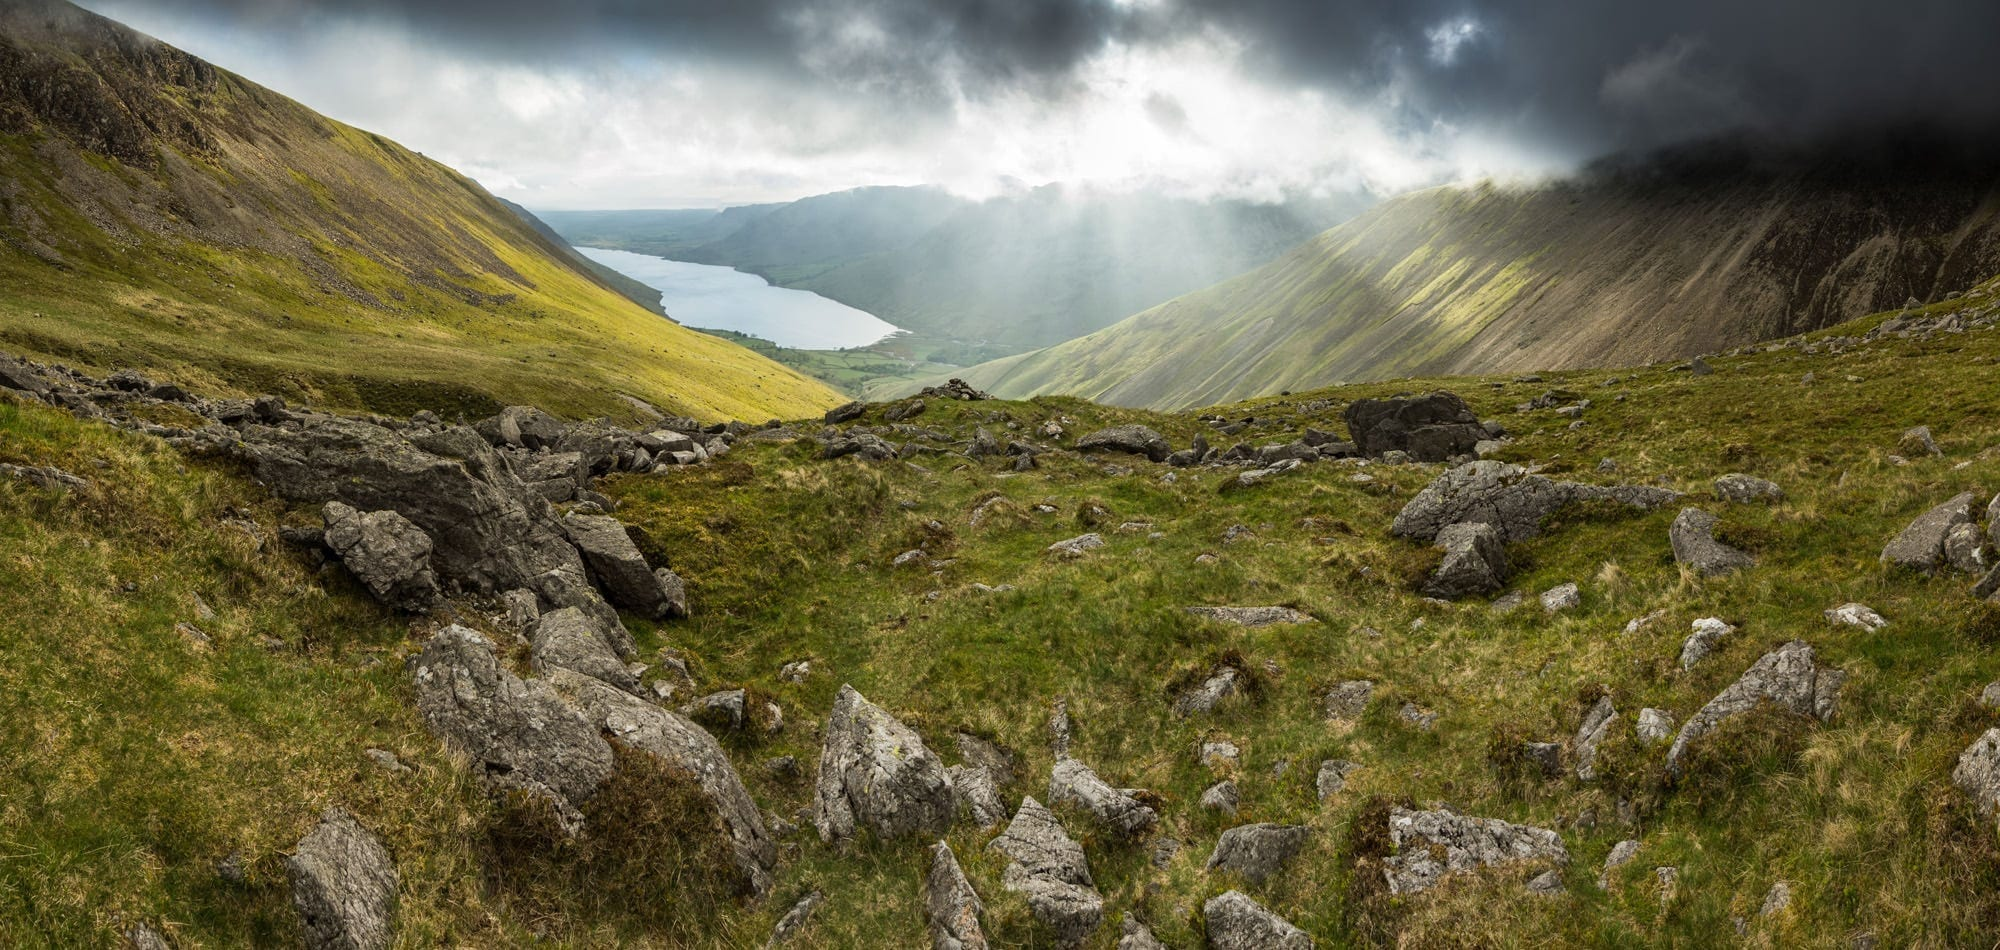 Storms Over Wasdale - Wild Camping Photography Workshop